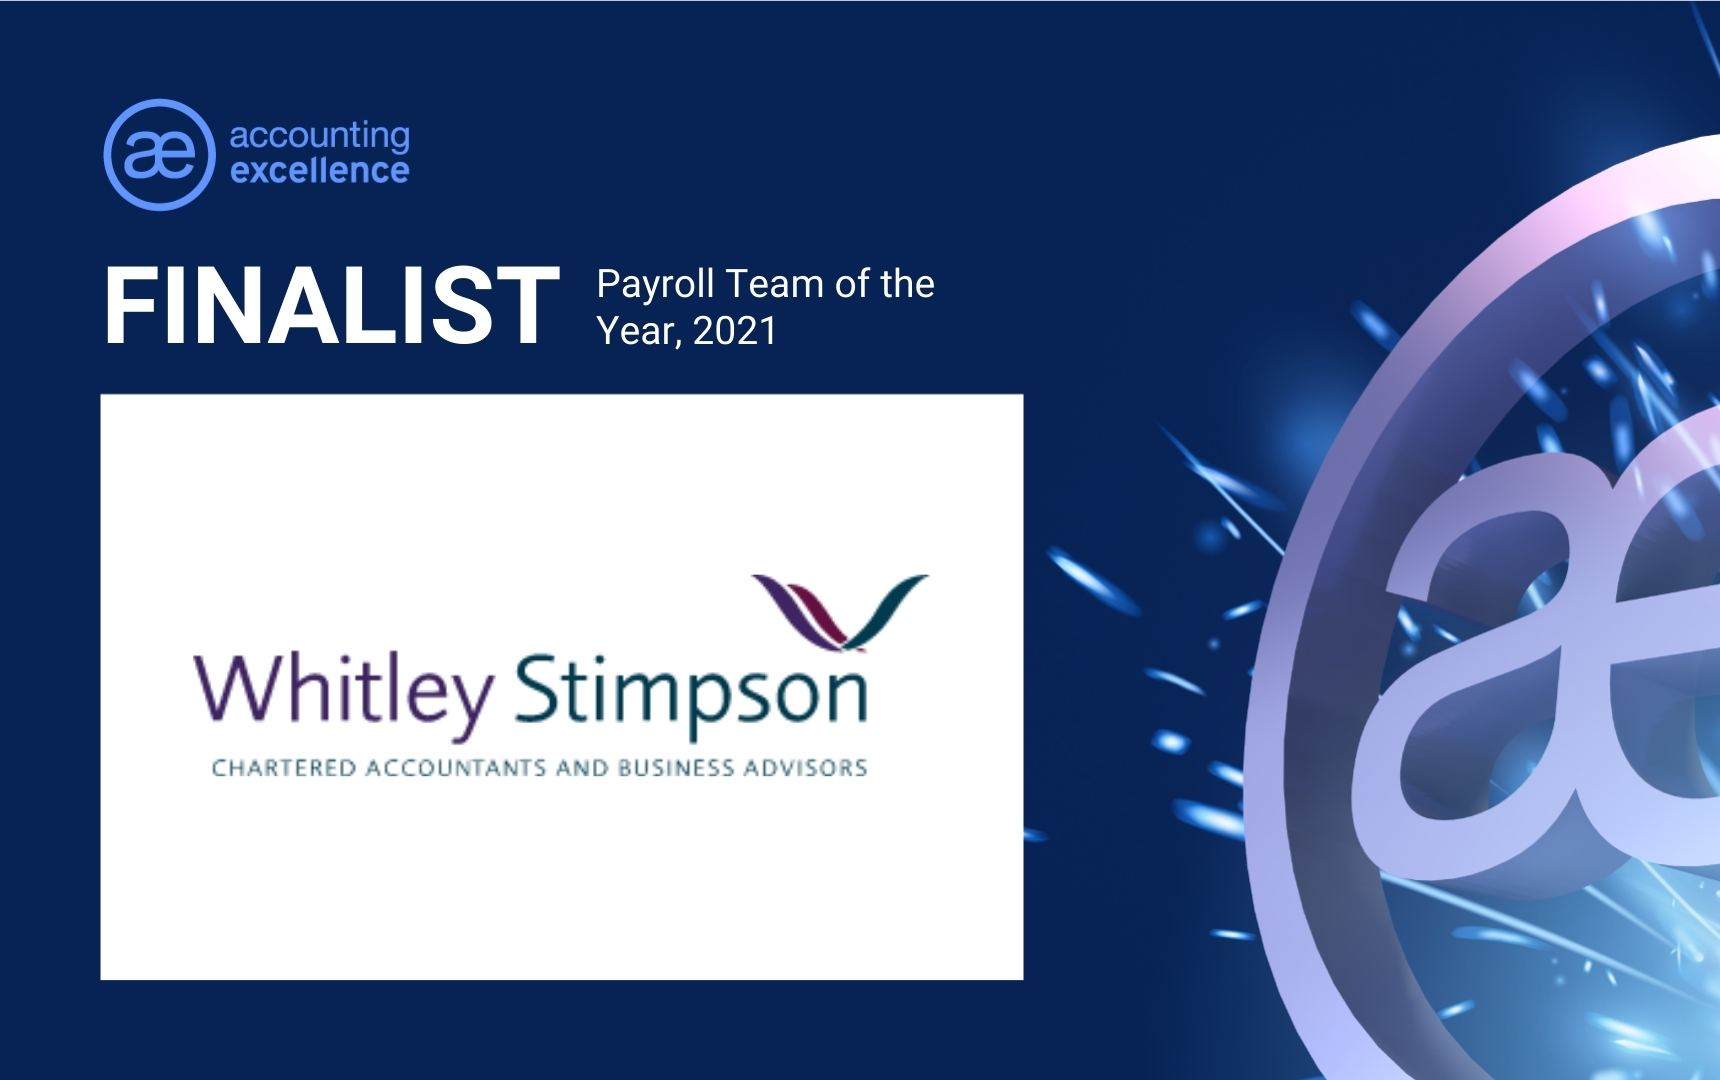 Payroll Team of the Year Finalist